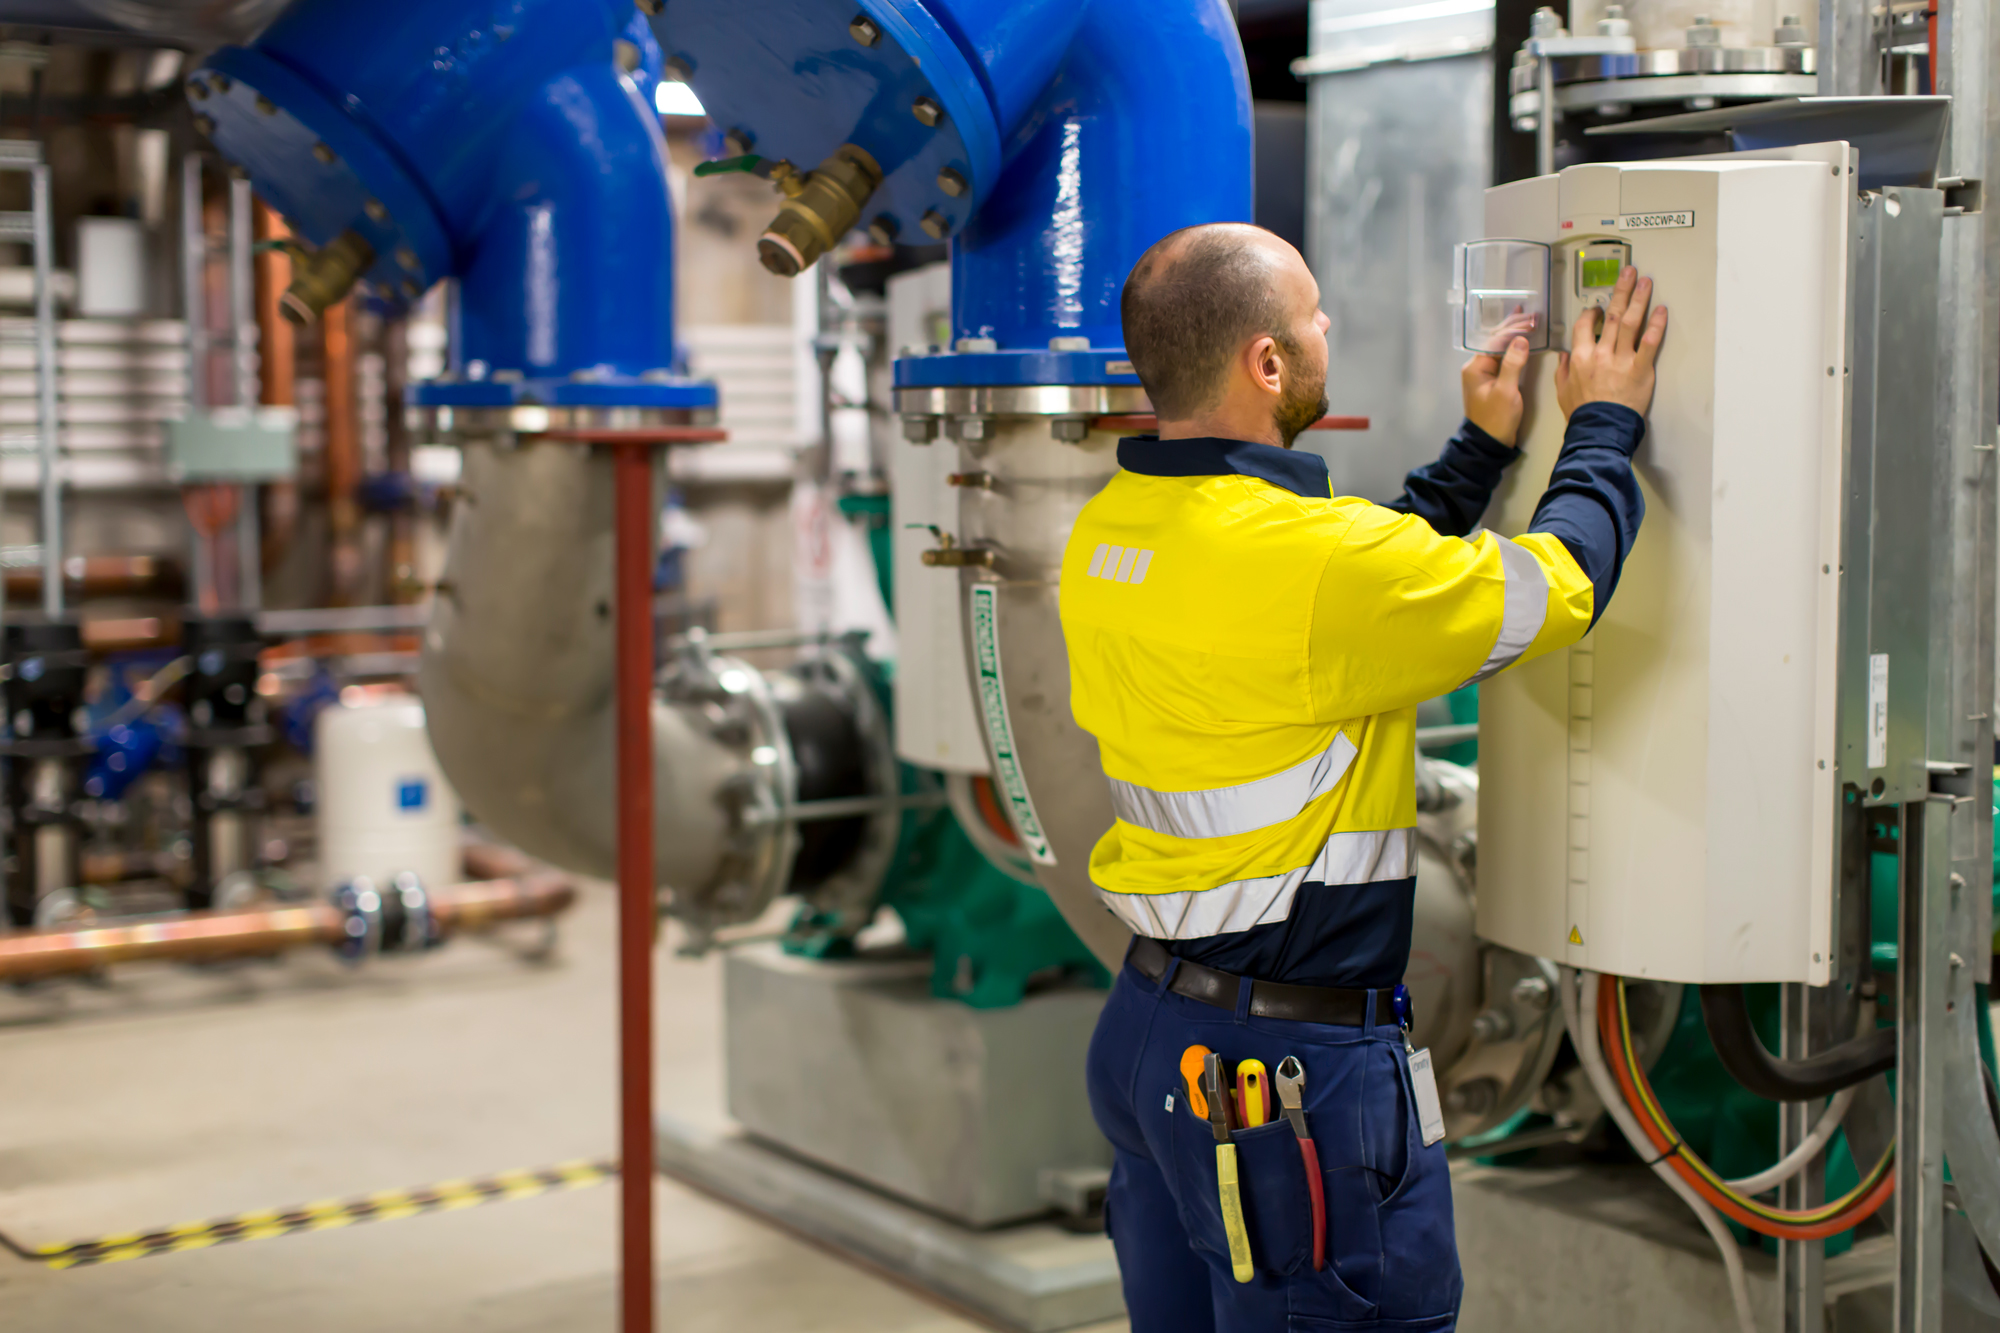 Testing and Commissioning of electrical instrumentation the Sydney Central Thermal Plant by ARA Electrical technician.